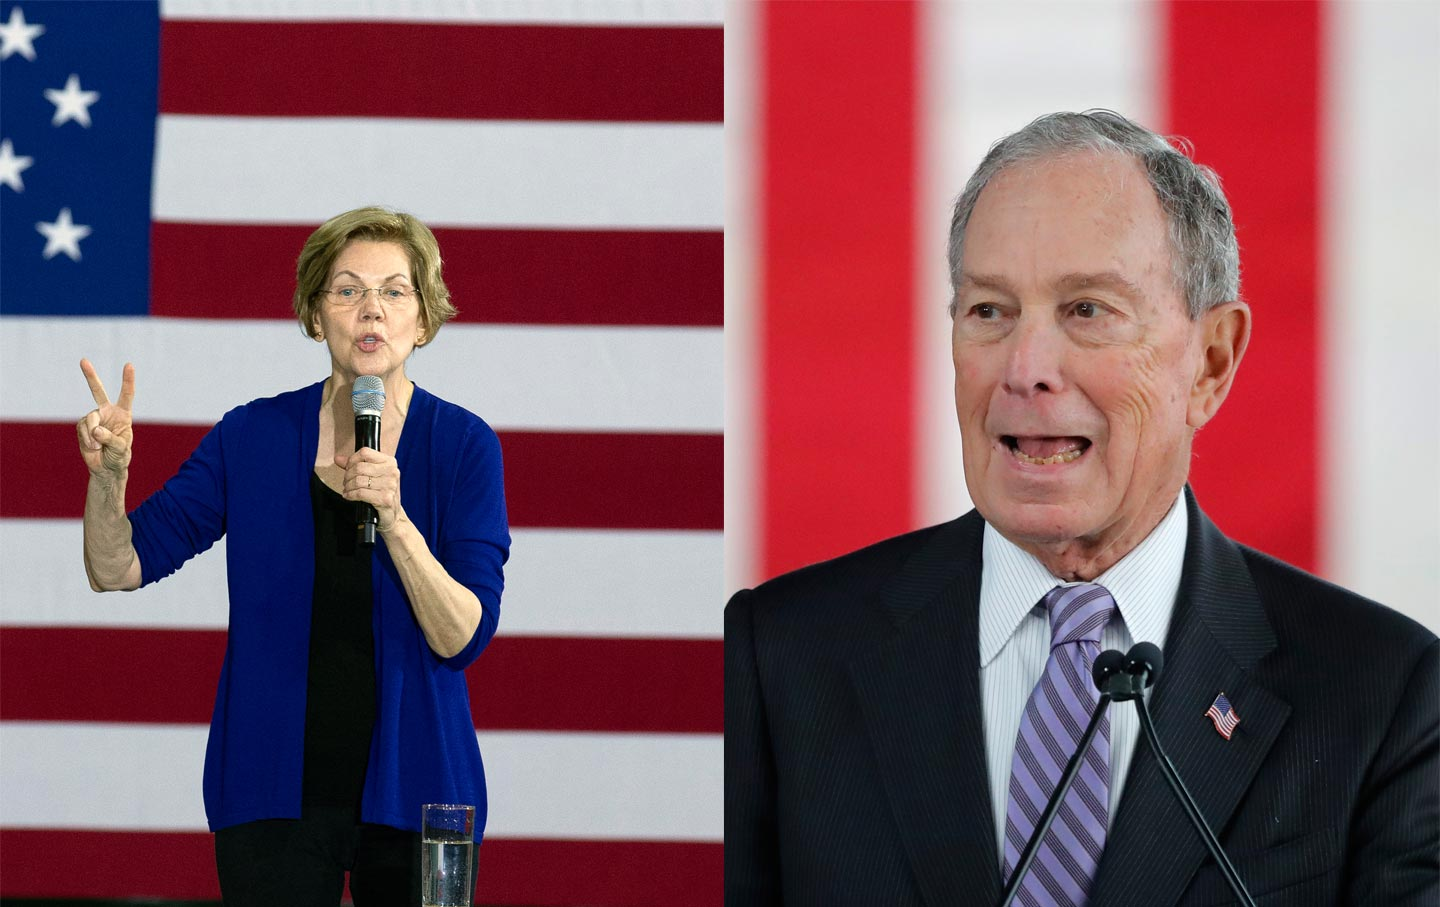 Elizabeth Warren and Michael Bloomberg